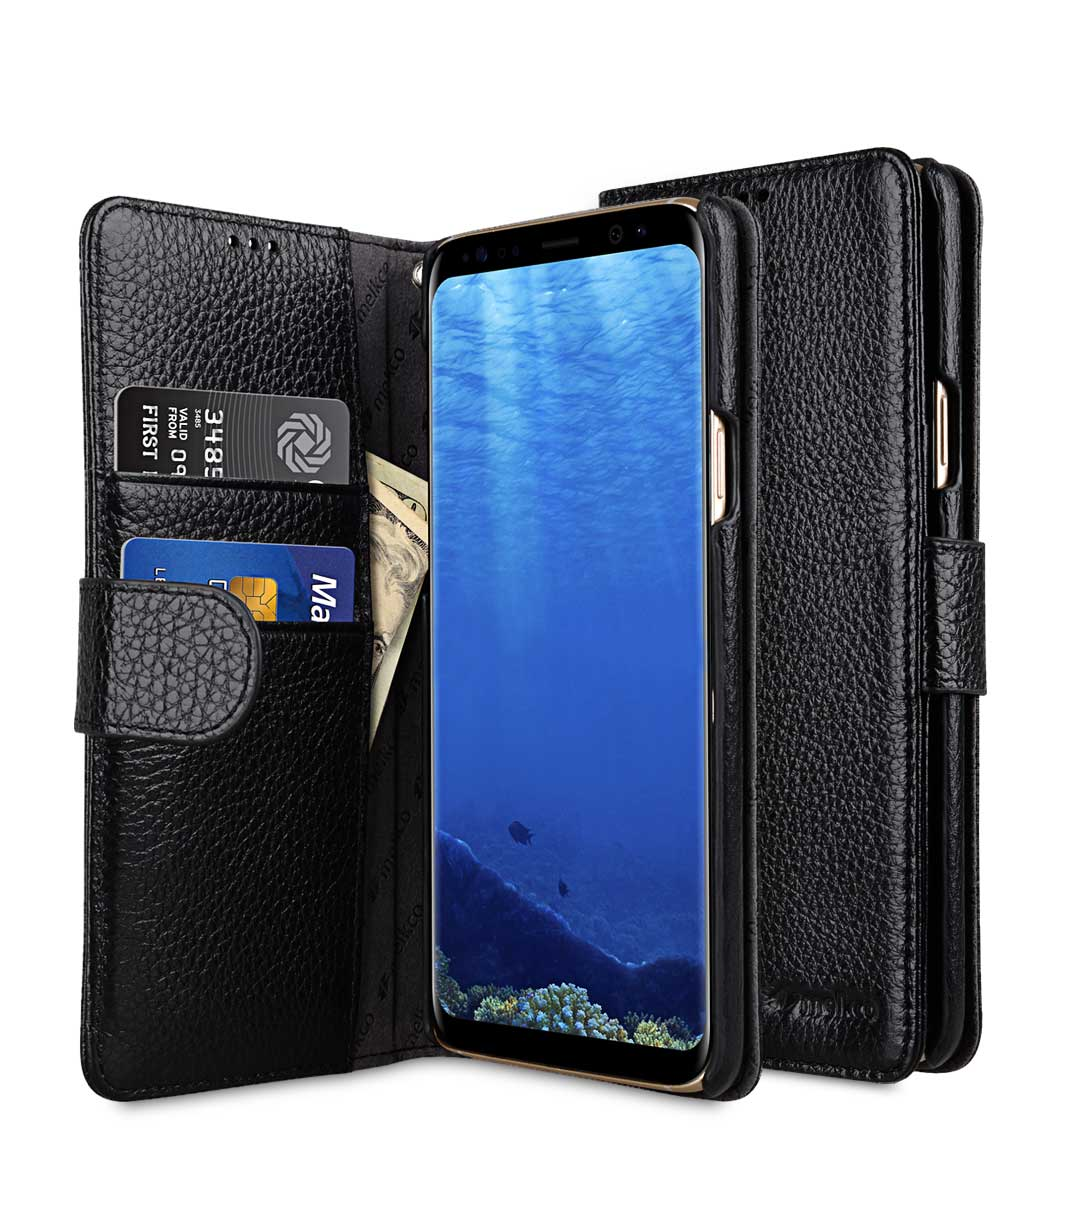 premium leather e case for samsung galaxy s9 plus wallet. Black Bedroom Furniture Sets. Home Design Ideas